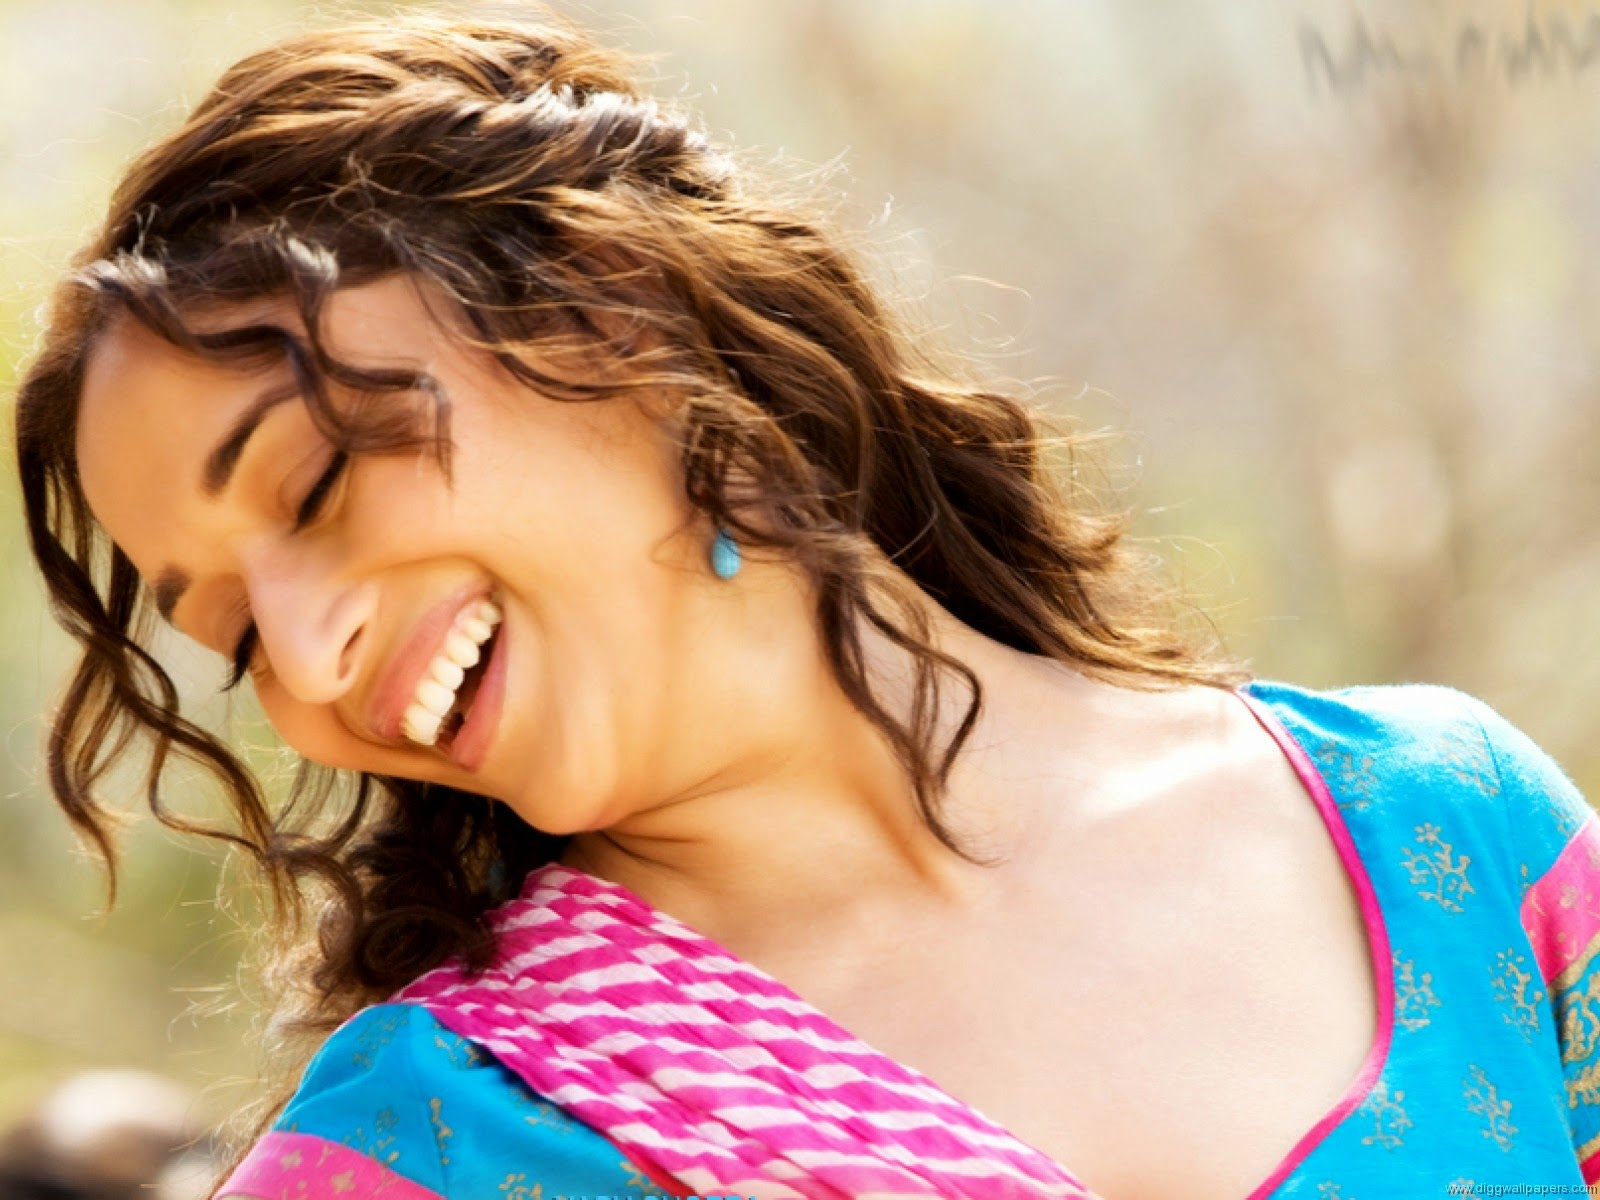 Wellcome To Bollywood Hd Wallpapers Madhuri Dixit -4532